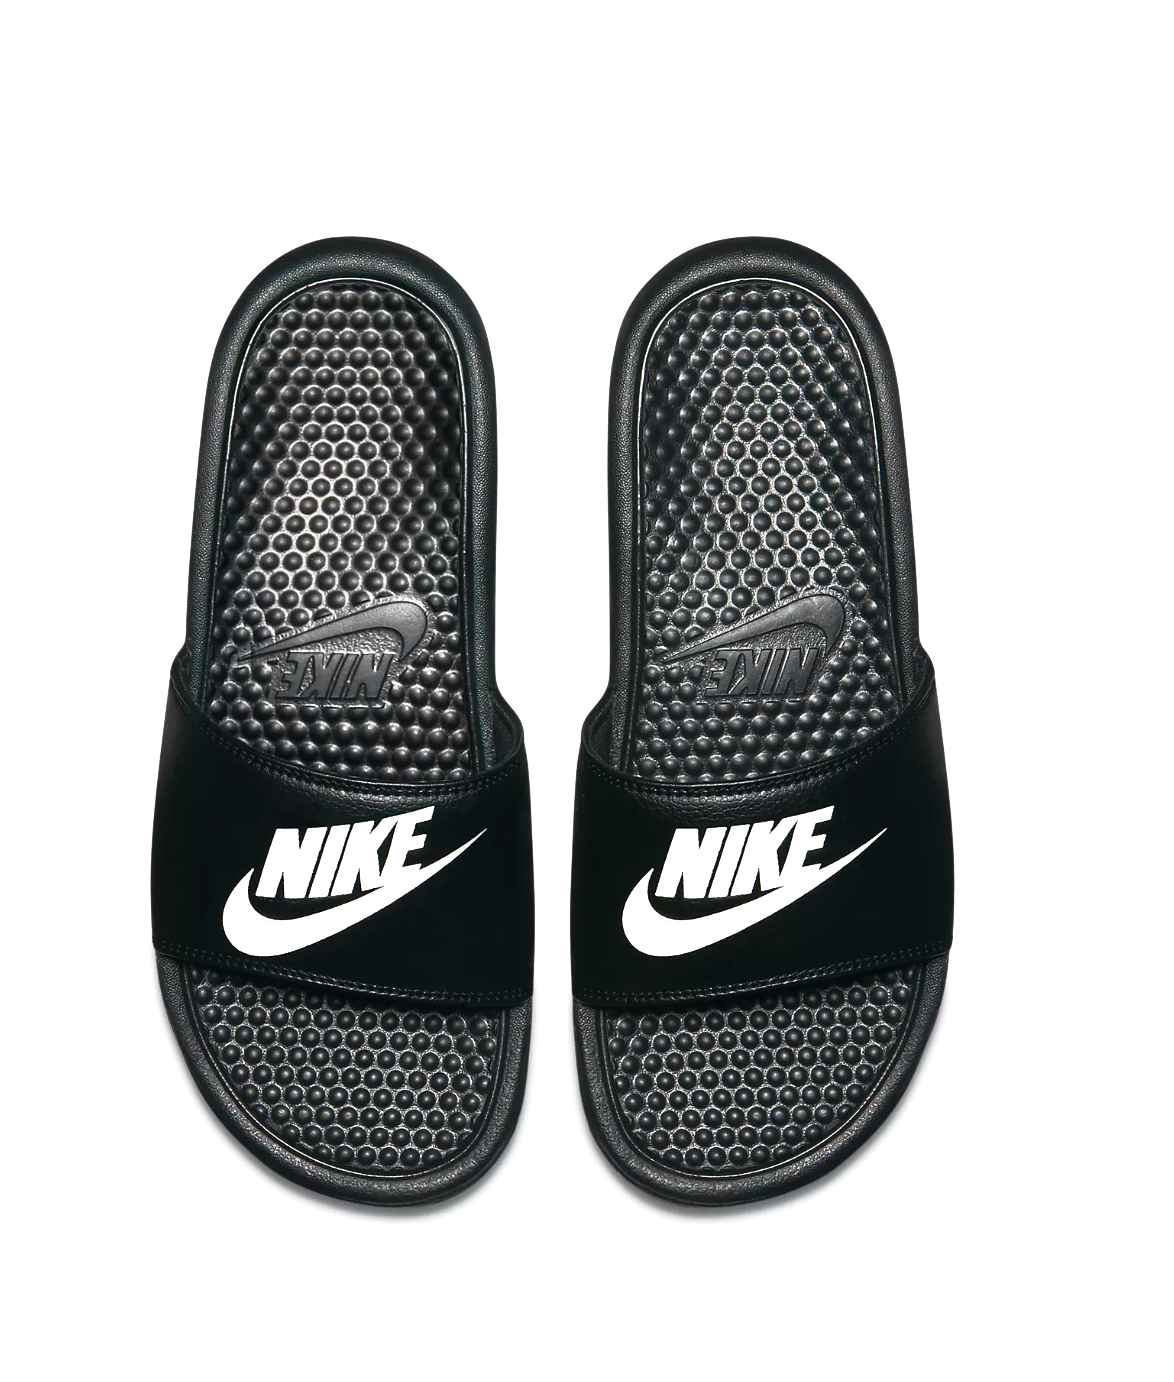 SLIDES - It's always s nice to have a pair of slides in your bag for pre and post workout. The Nike Benassi Slide is our favorite. Comfy and cute.